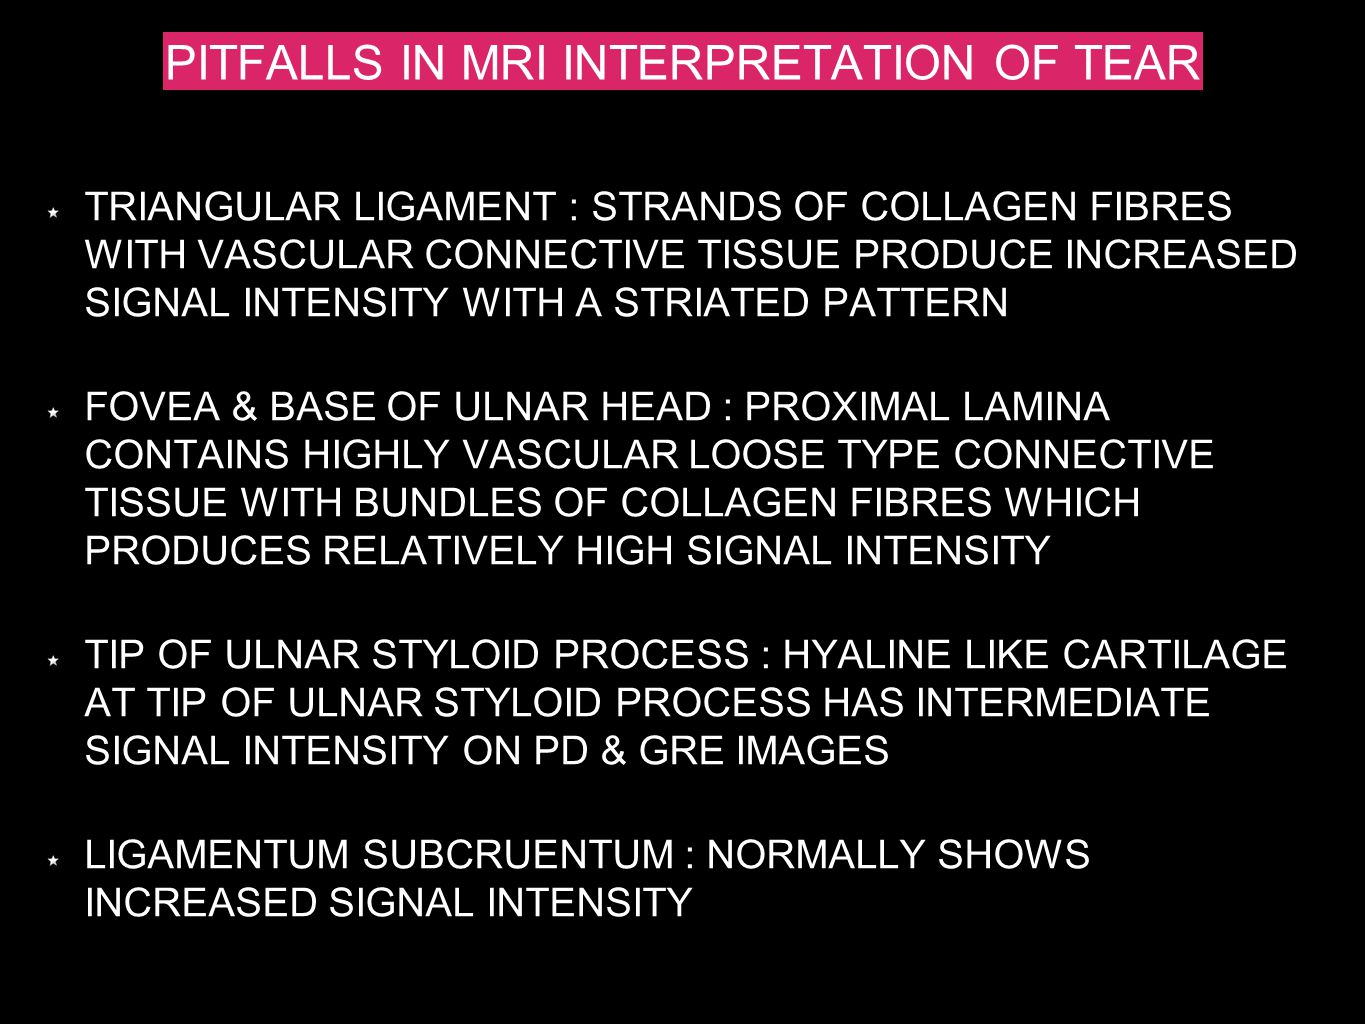 PITFALLS IN MRI INTERPRETATION OF TEAR